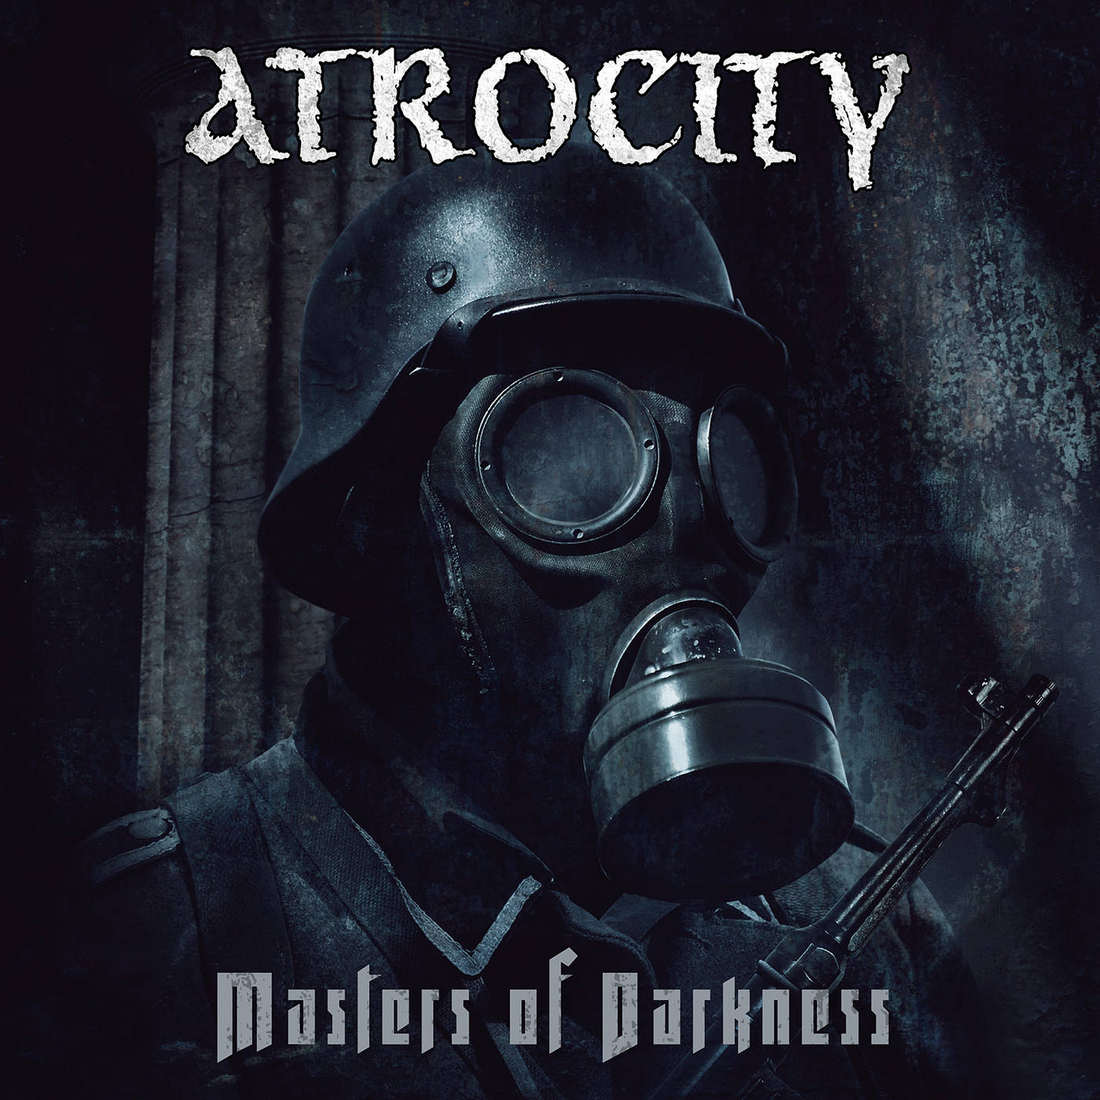 Atrocity: Masters of darkness (2017) Book Cover